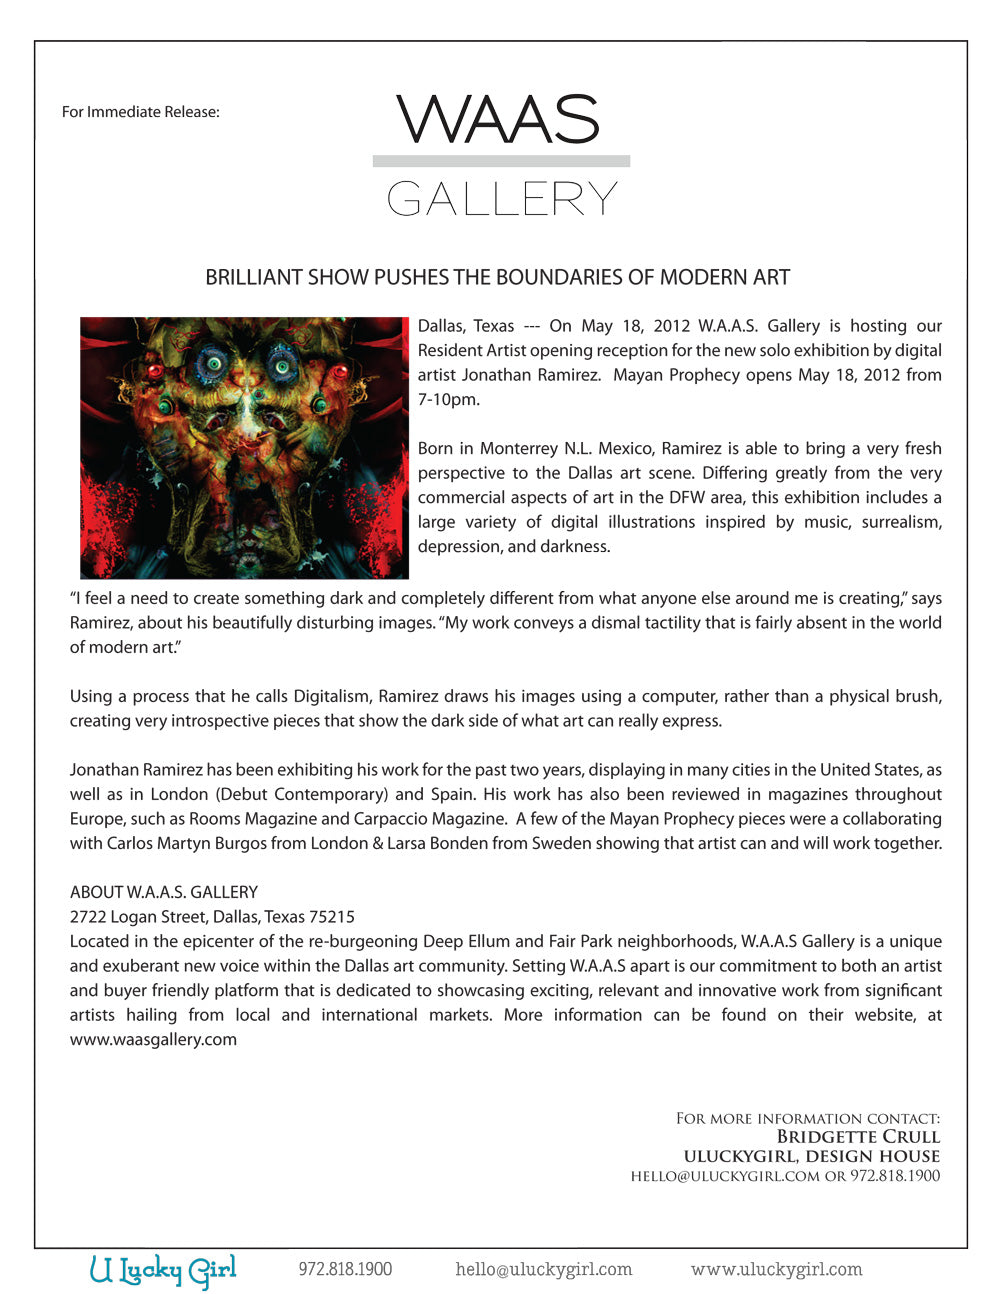 Art Gallery Press Release